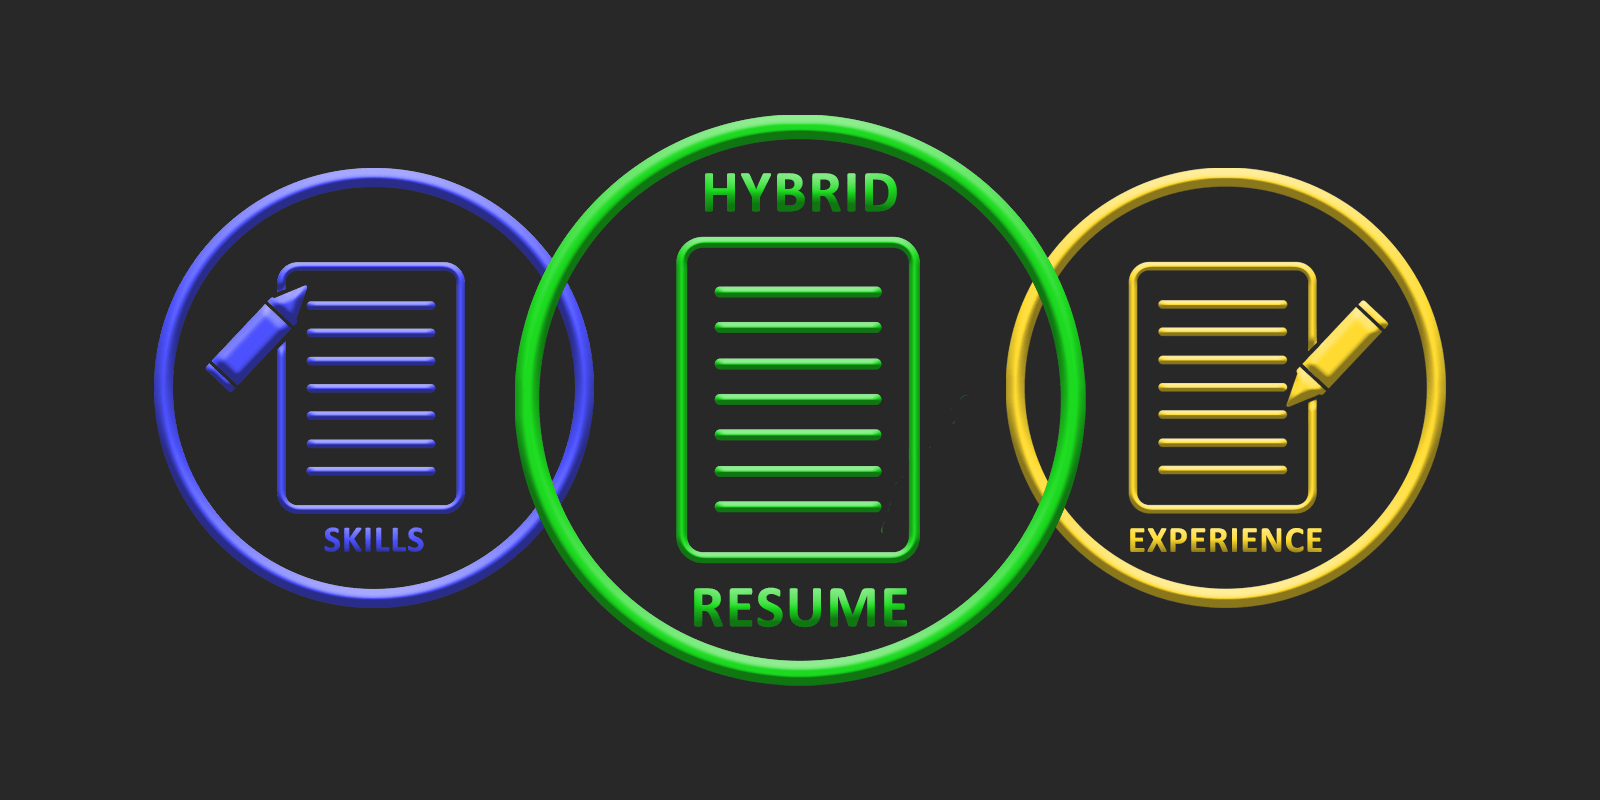 Combination And Hybrid Resume Guide Example Flexjobs